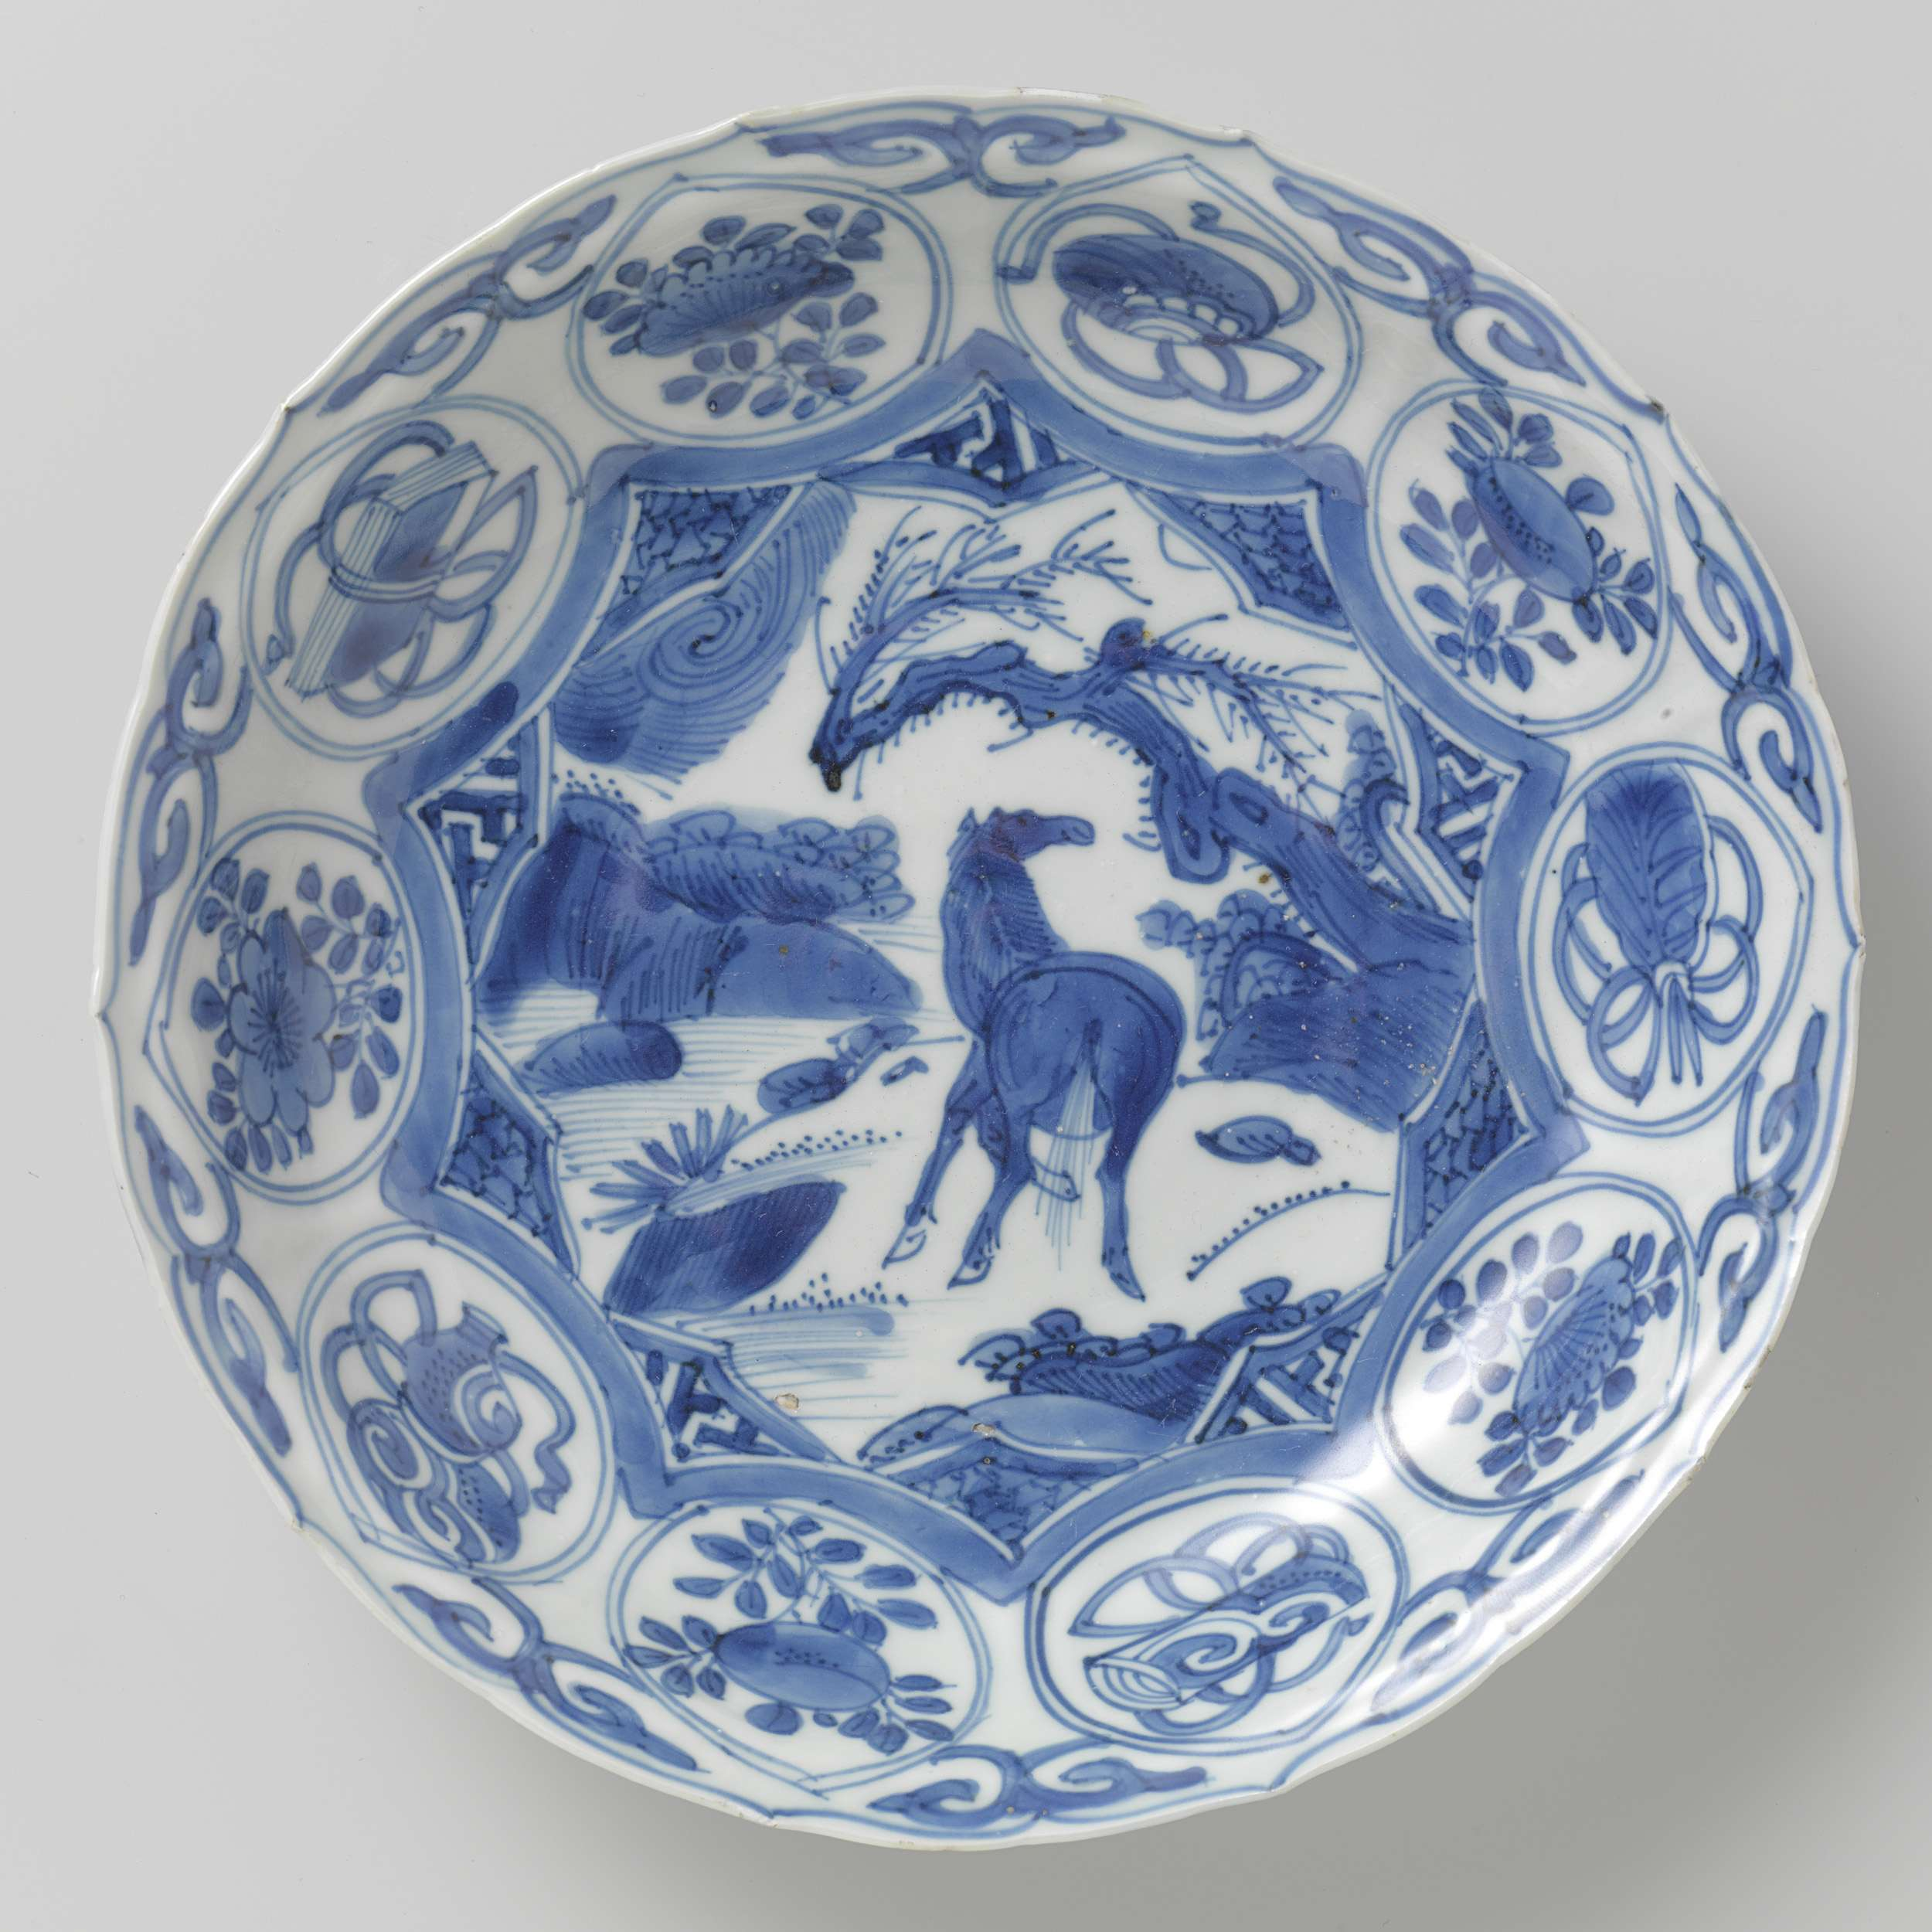 Chinese porcelain, Saucer-dish with a horse in a landscape, 1600-1624, The Royal Society of Friends of Asian Art, Amsterdam, Netherlands.